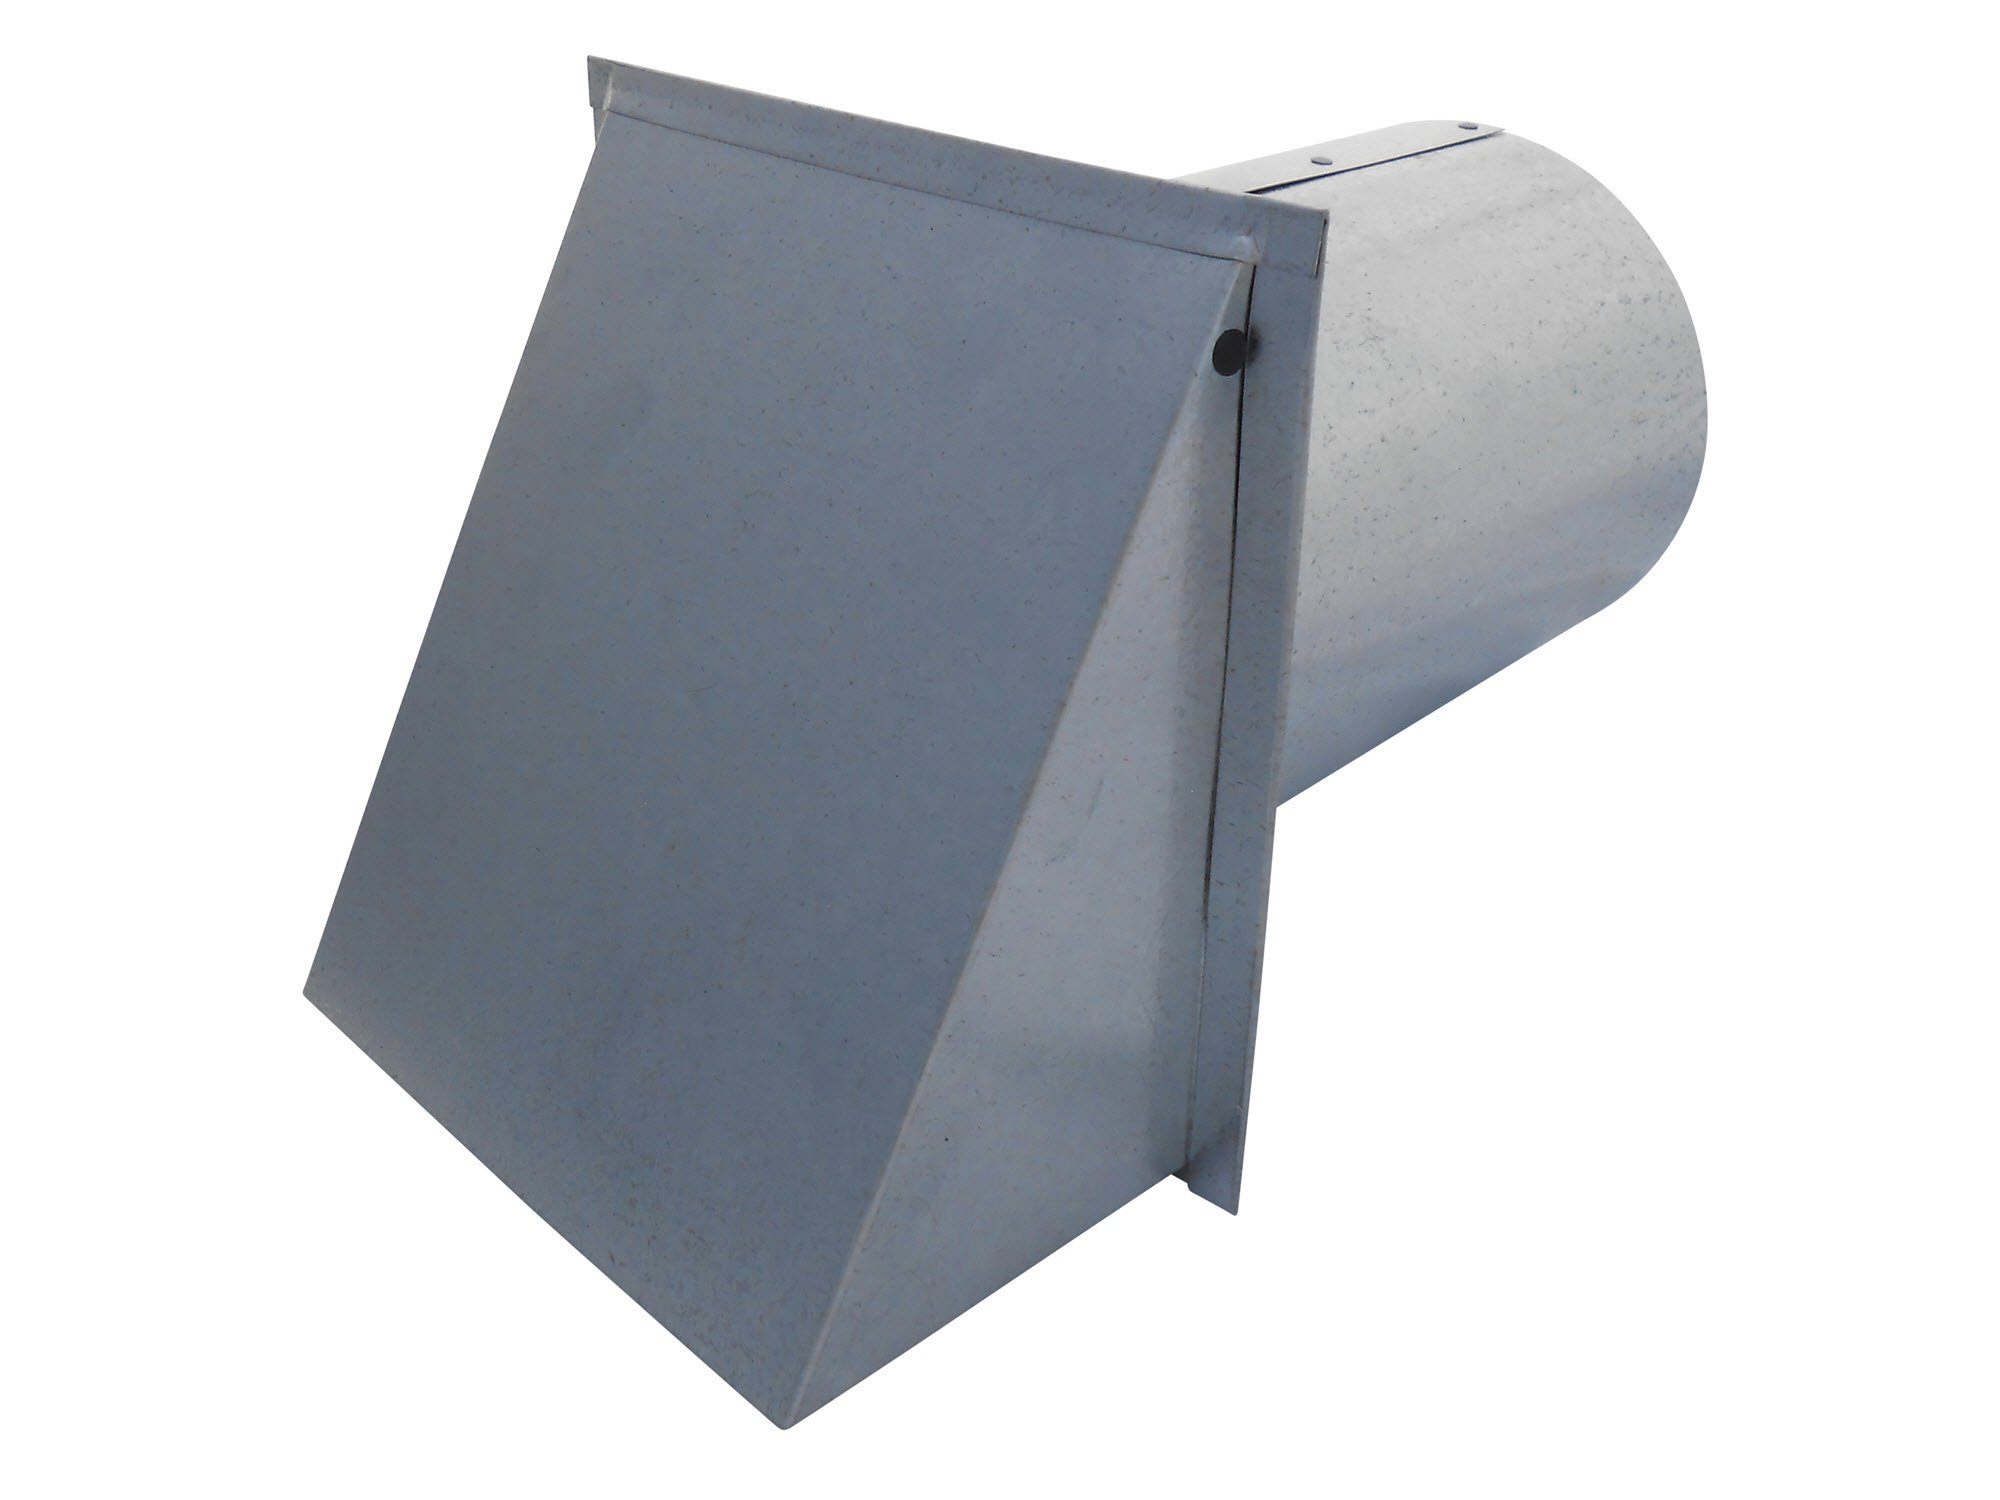 6 Inch Wall Vent Galvanized Damper Only (6 Inch Diameter) - Vent Works